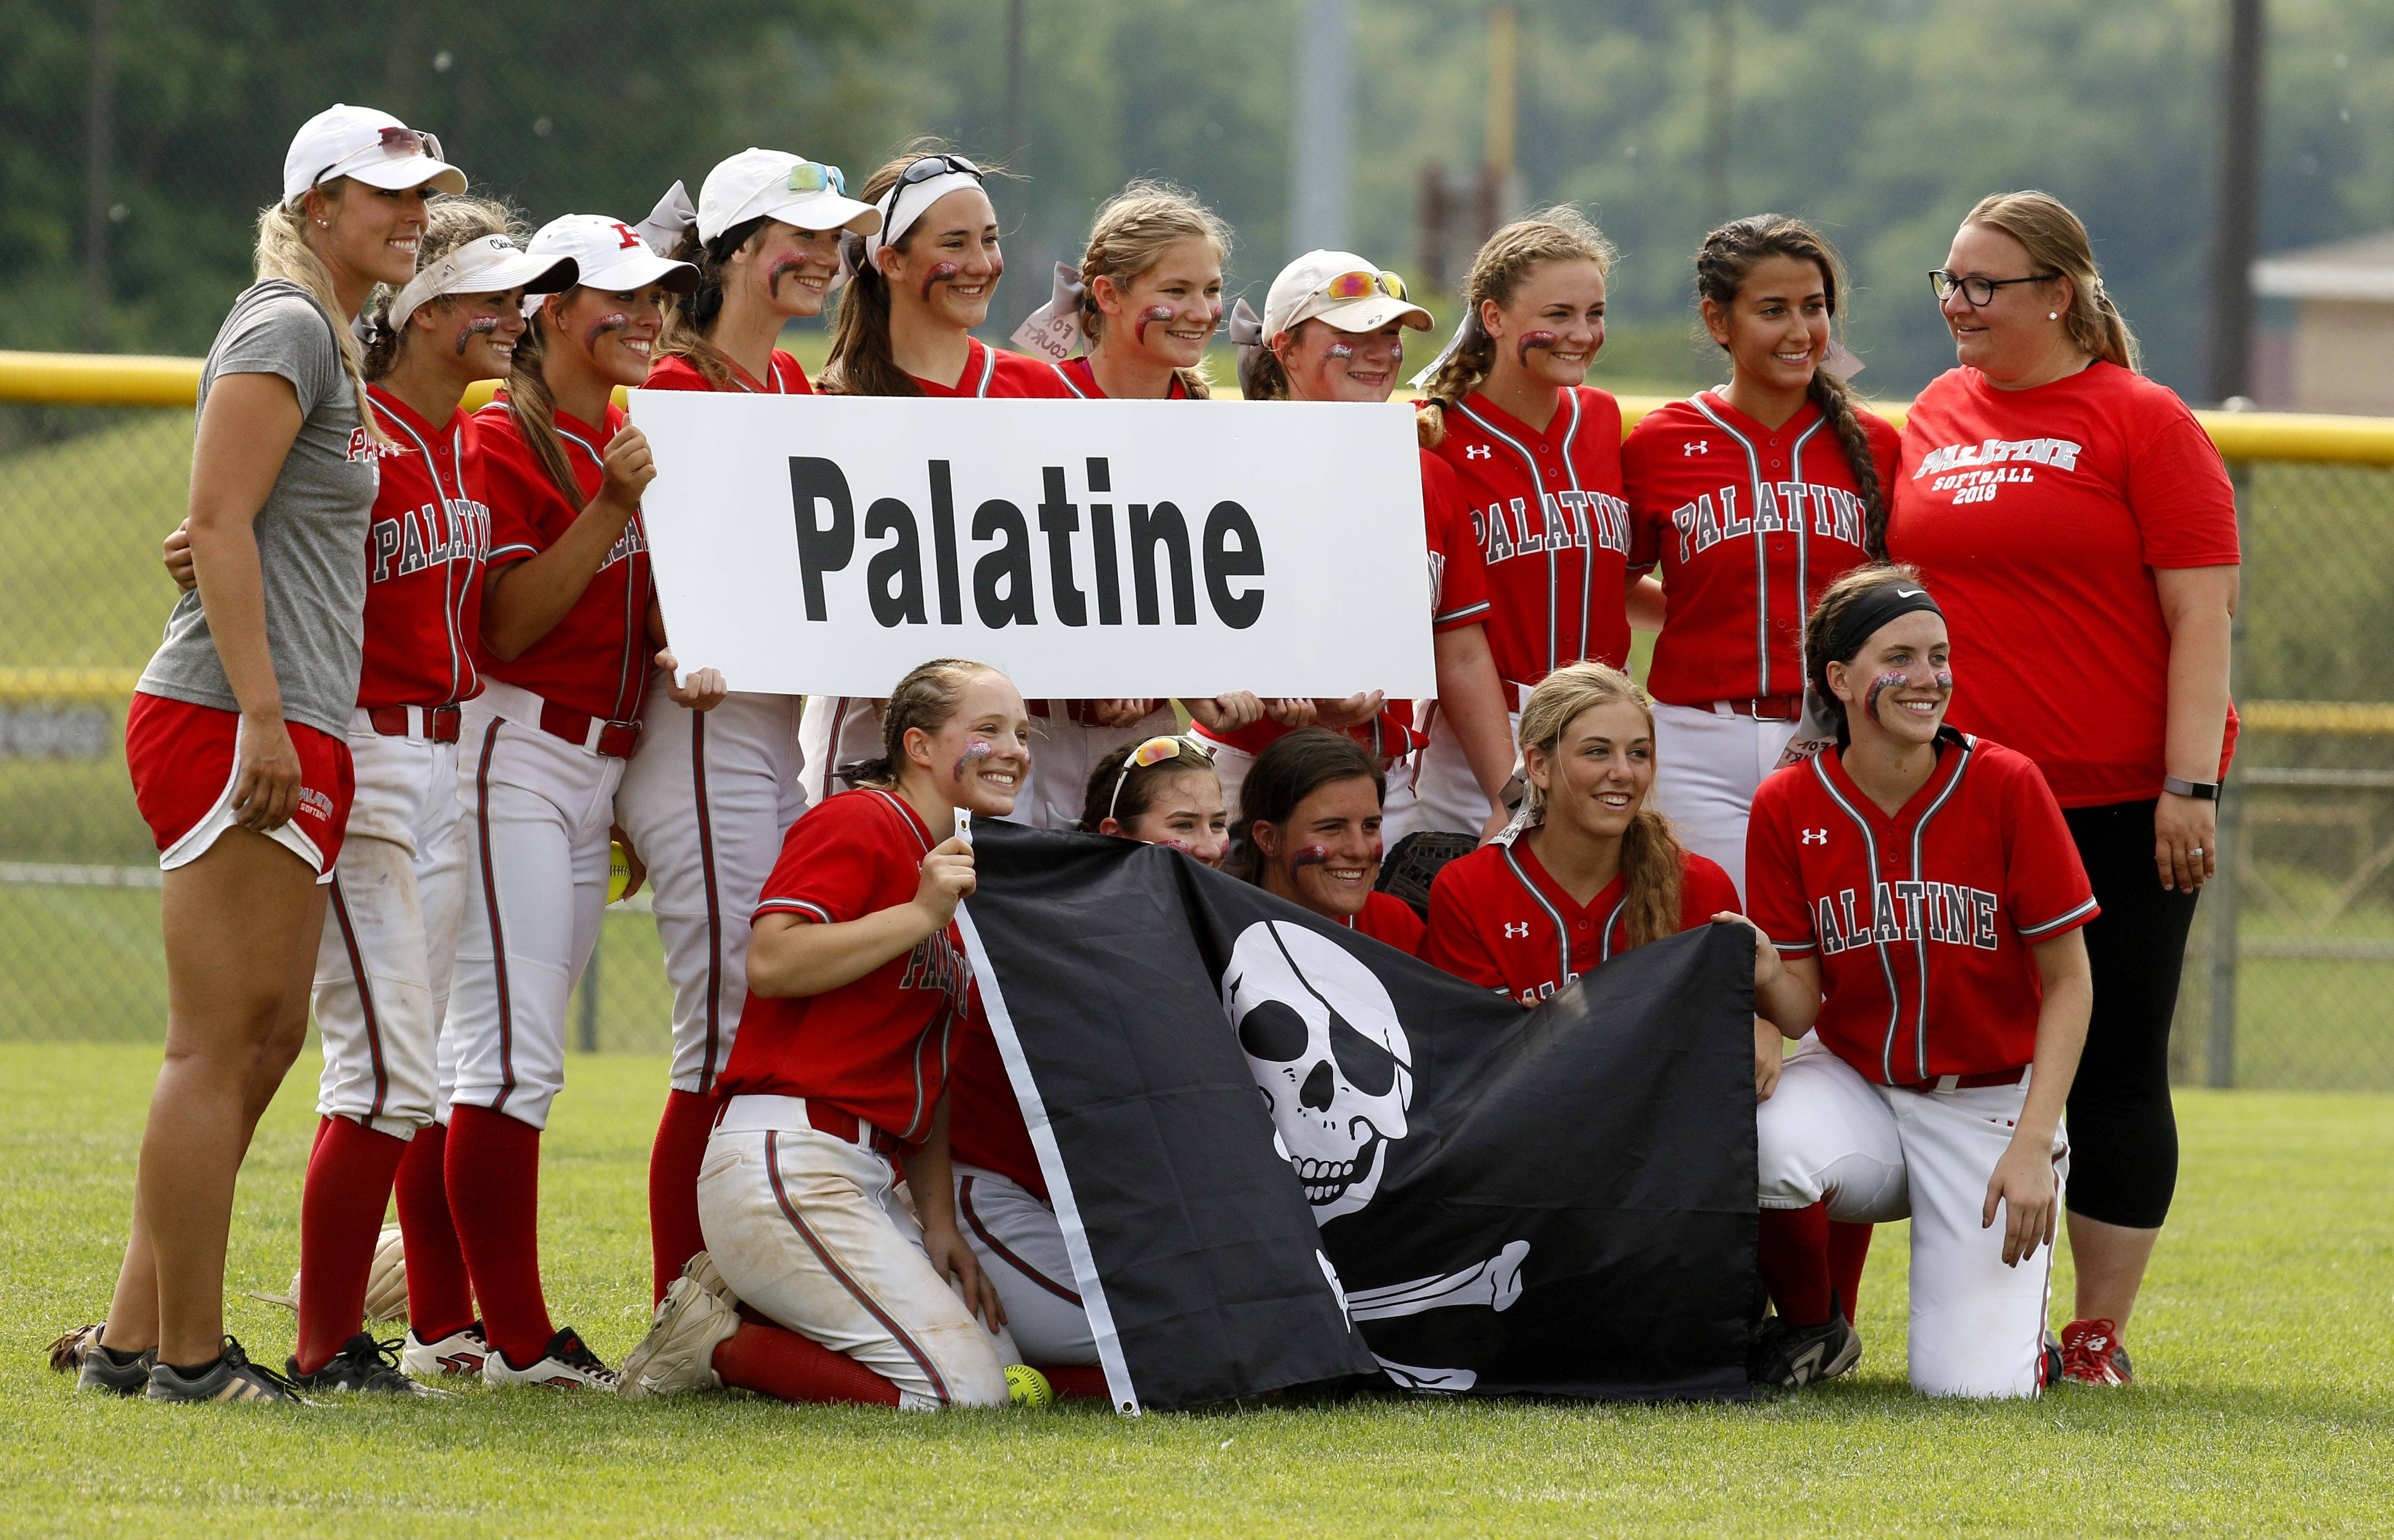 Palatine players and coaches pose for a photo after their 2-0 win over York, in the Class 4A third-place game.